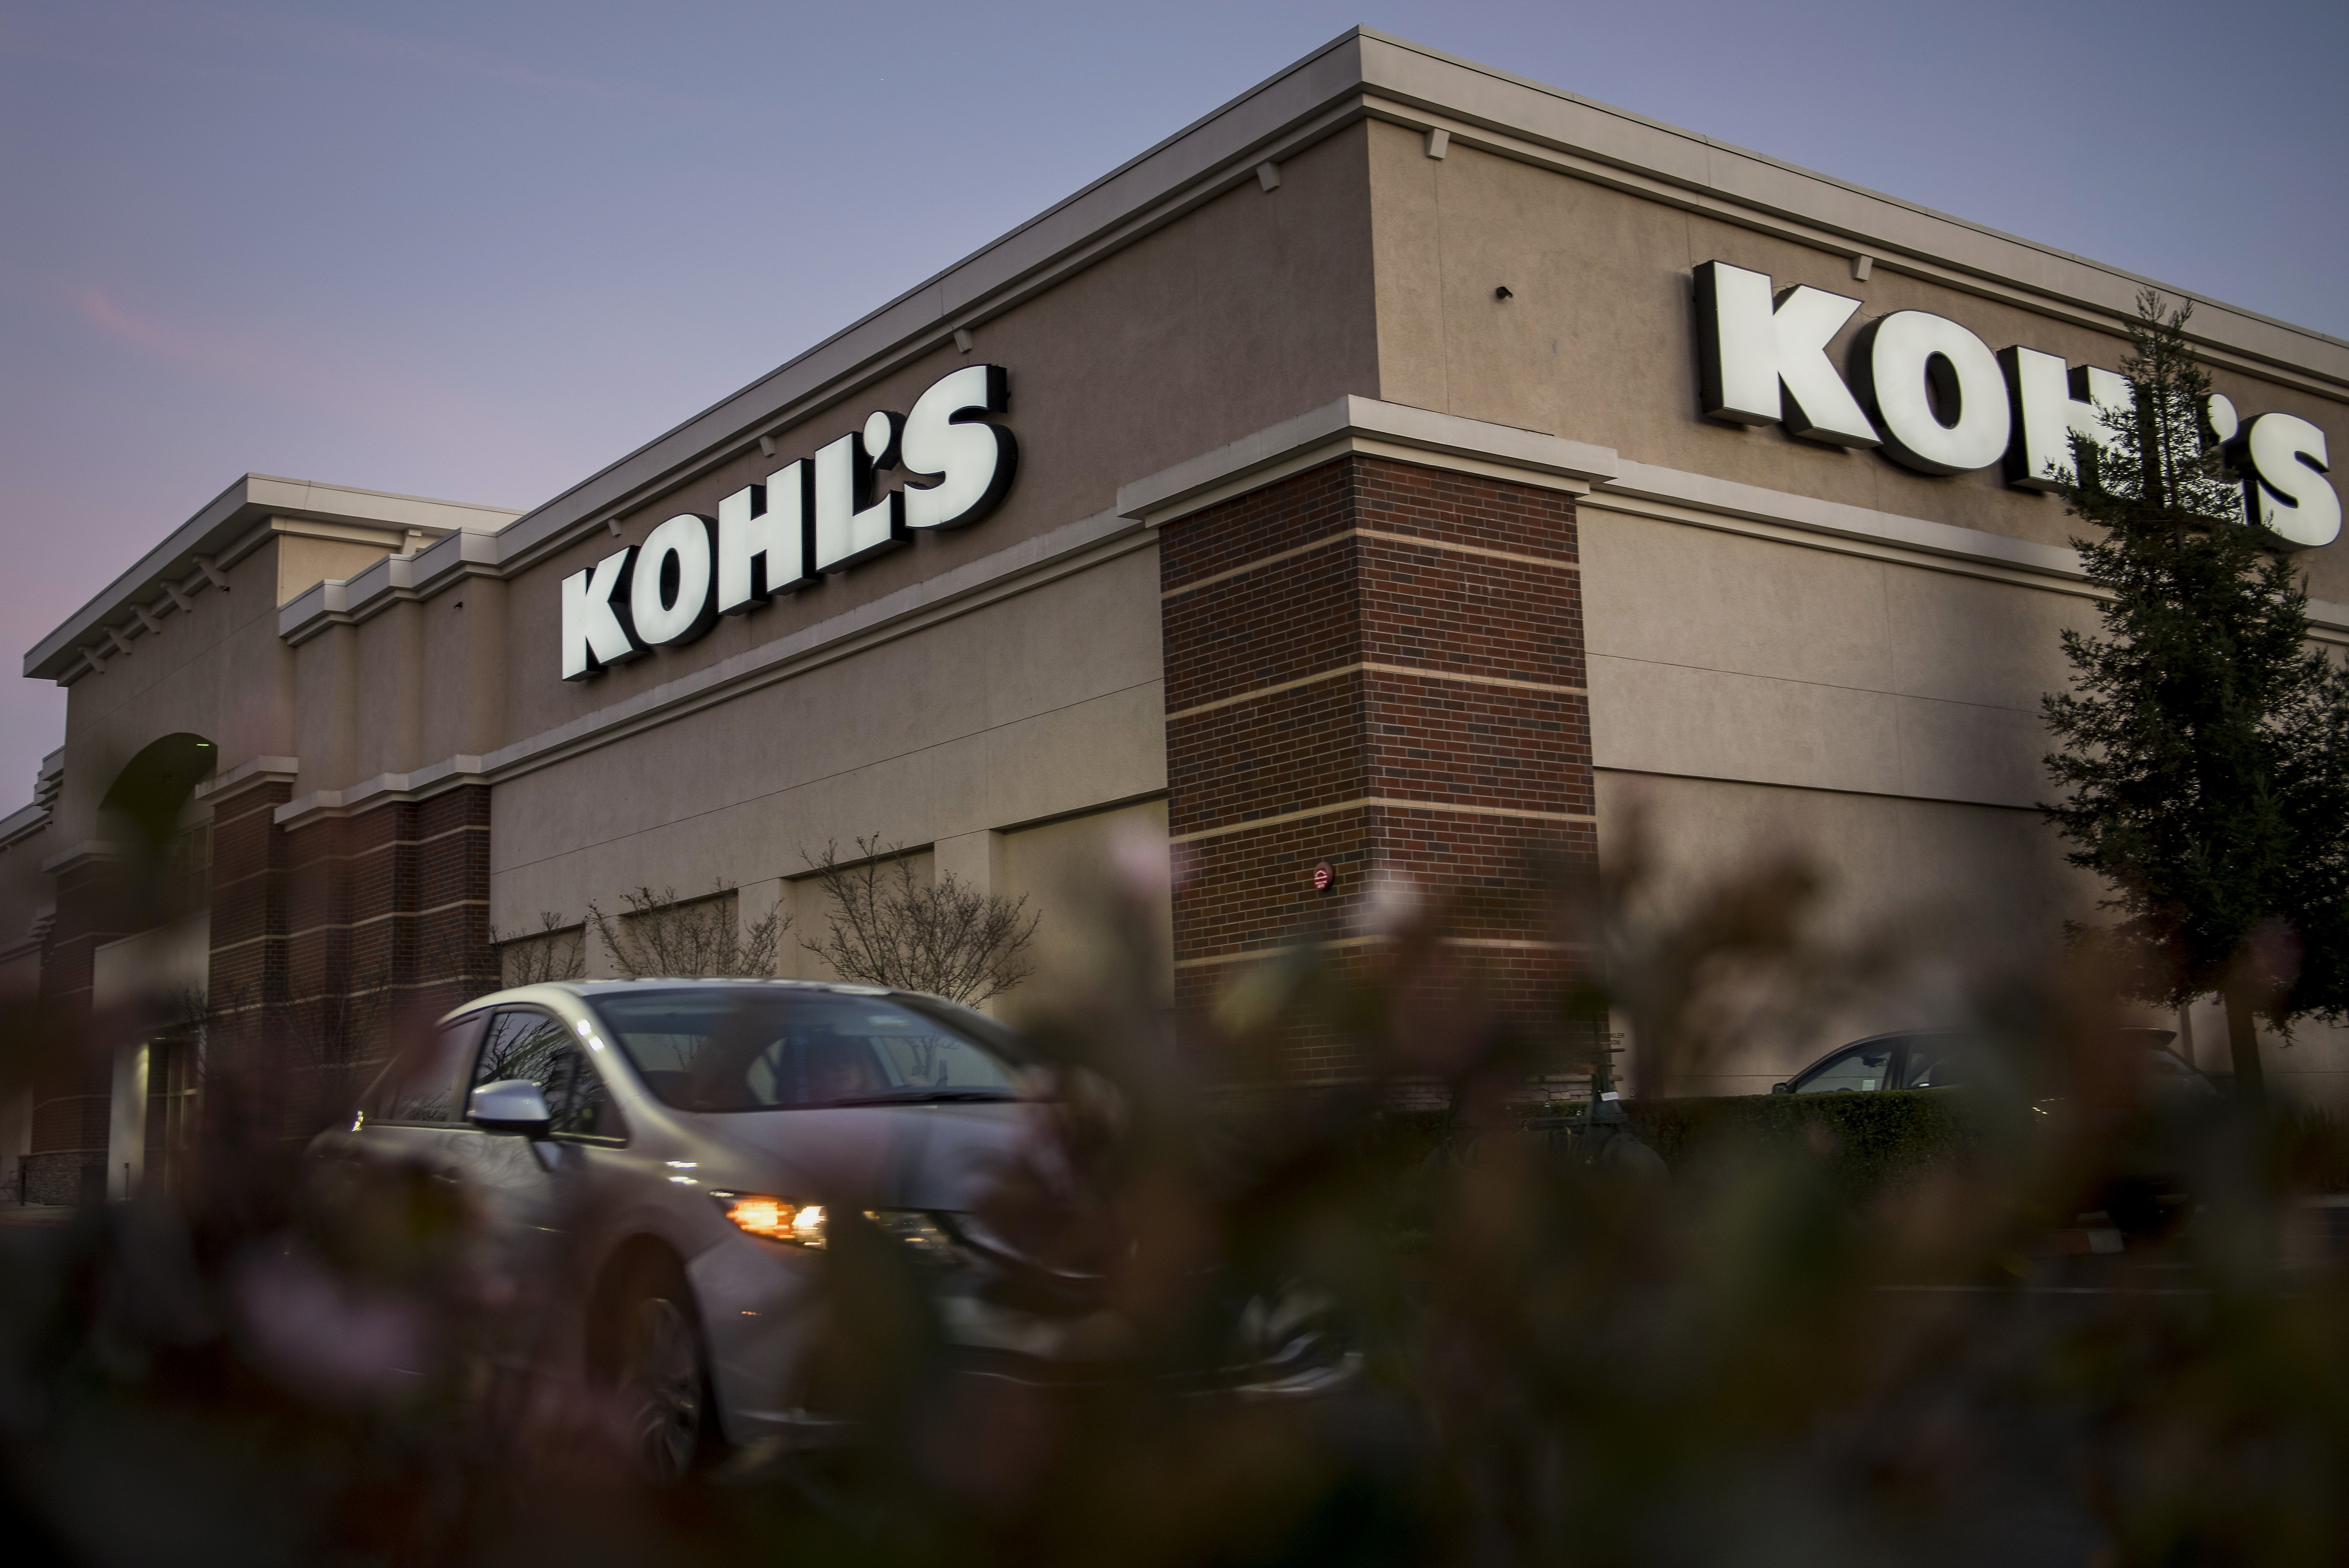 Kohl's Ceo Would Rather Shrink Stores Than Close Them | Fortune For 2017 Kohl's Toe Rings (Gallery 9 of 15)